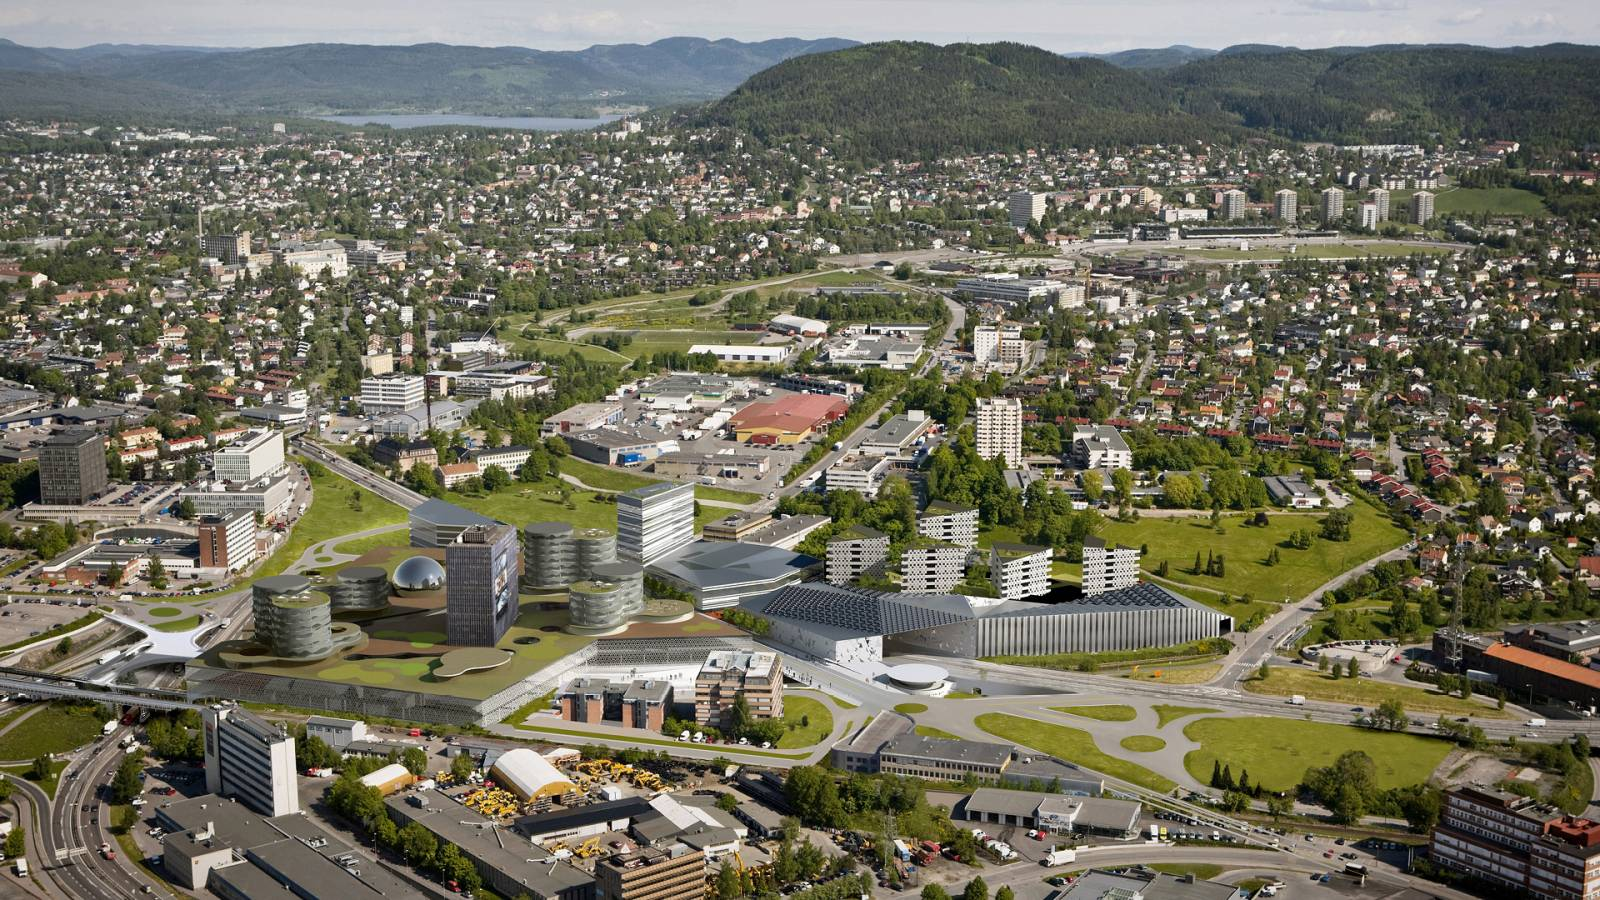 AERIAL VIEW - Økern Centre - SPOL Architects